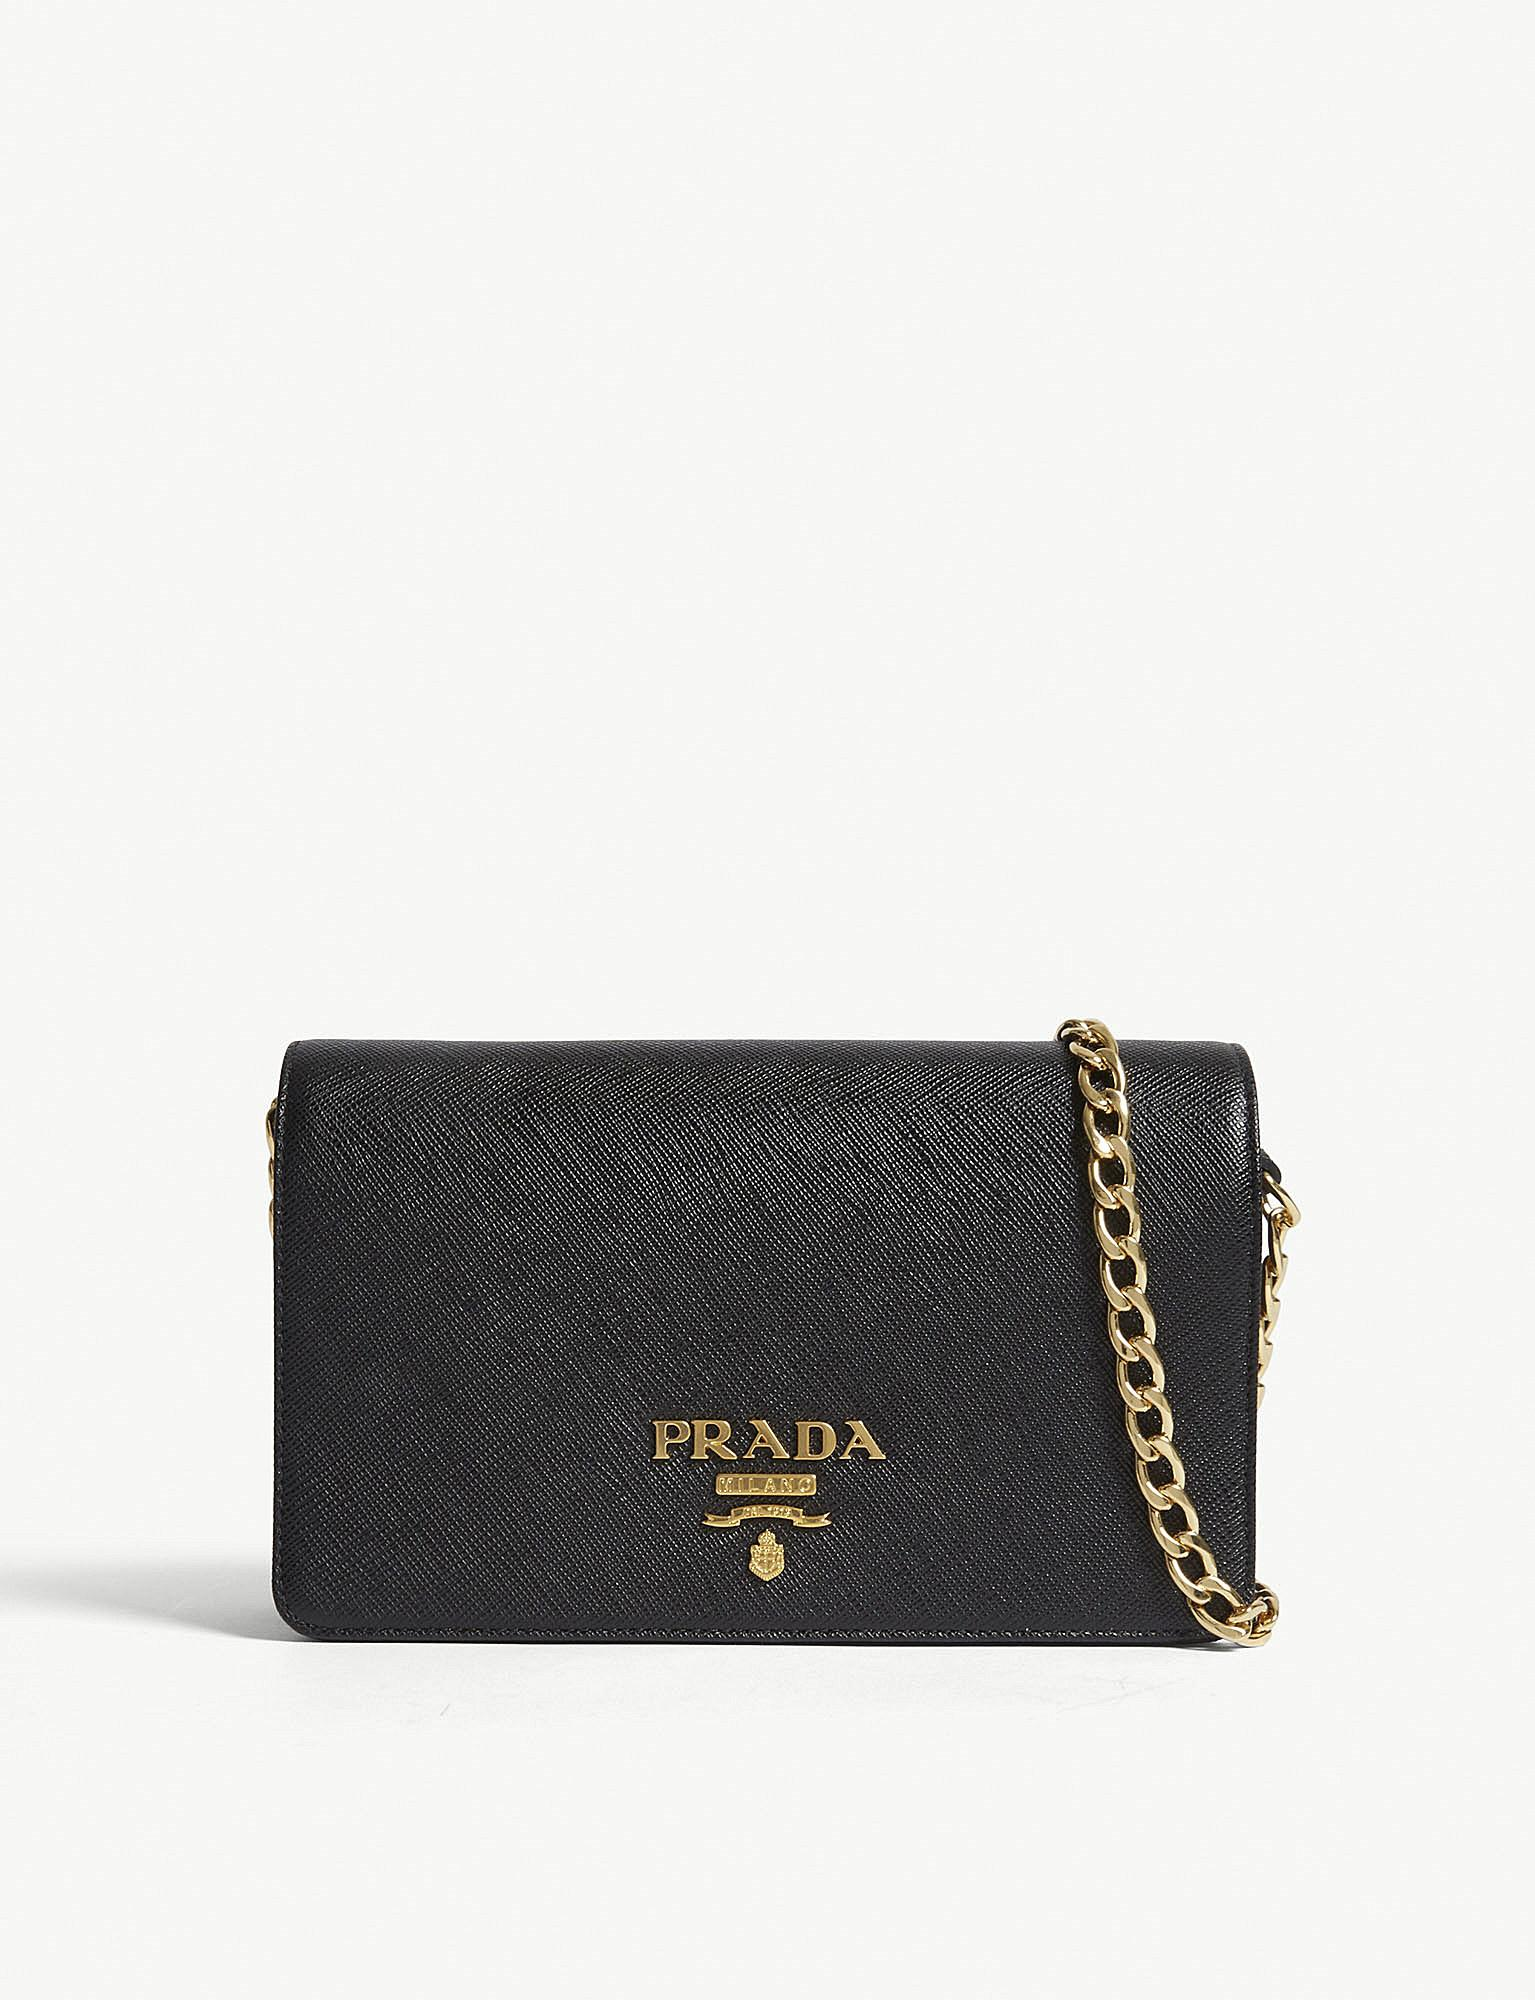 Prada - Womens Black Core Saffiano Leather Wallet-on-chain Wallet - Lyst.  View fullscreen e5b986f5b5a0e